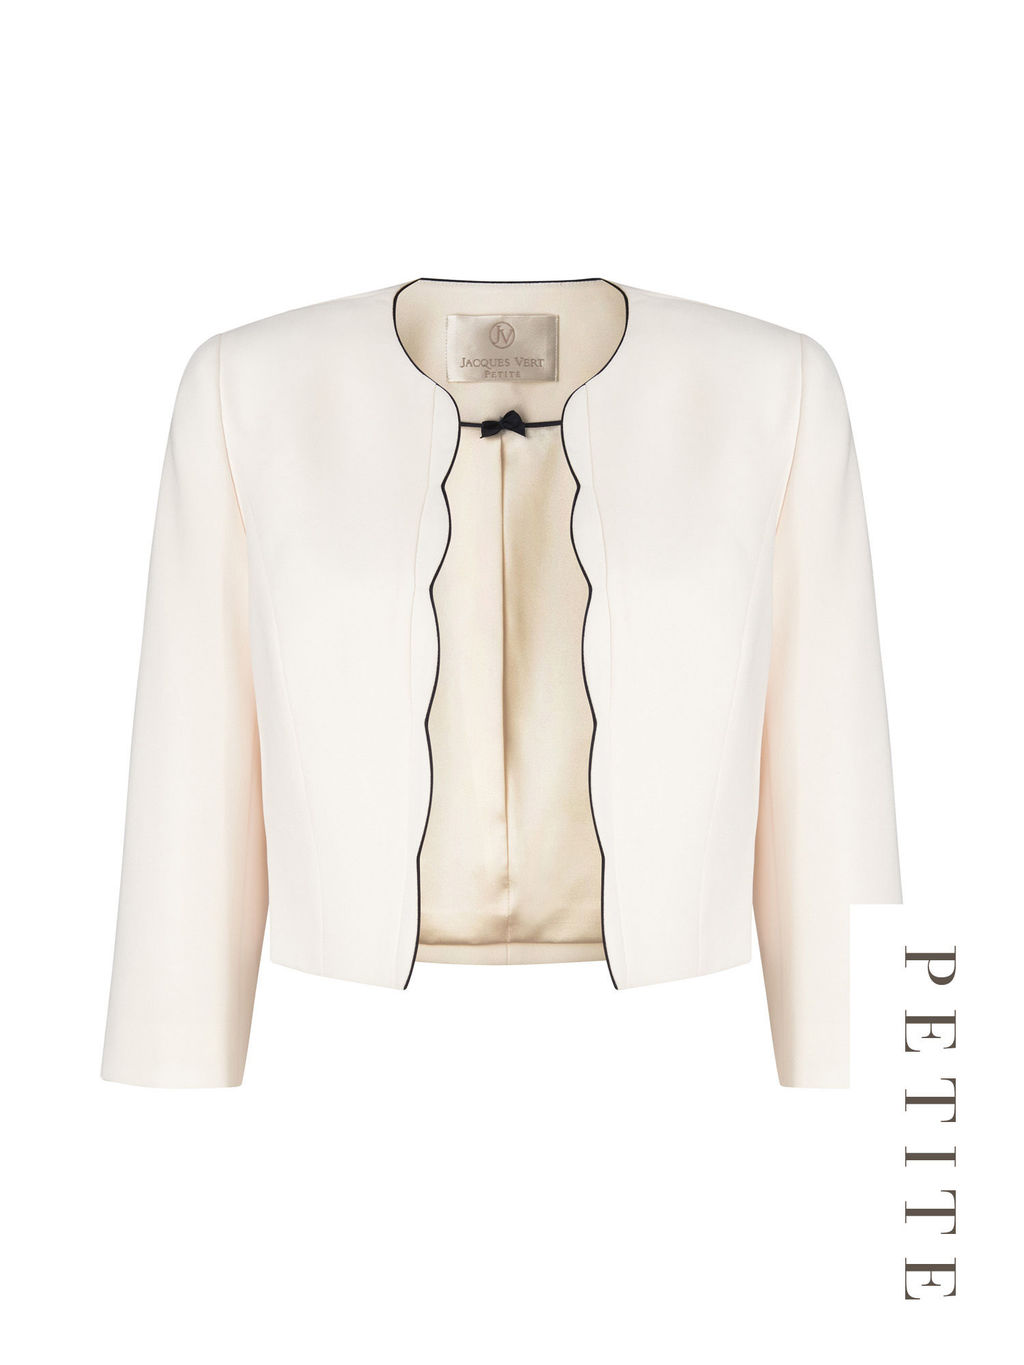 Petite Scallop Edge Jacket - pattern: plain; style: bolero/shrug; collar: round collar/collarless; predominant colour: ivory/cream; occasions: evening, occasion; length: standard; fit: tailored/fitted; fibres: polyester/polyamide - 100%; sleeve length: 3/4 length; sleeve style: standard; collar break: low/open; pattern type: fabric; texture group: woven light midweight; season: s/s 2016; wardrobe: event